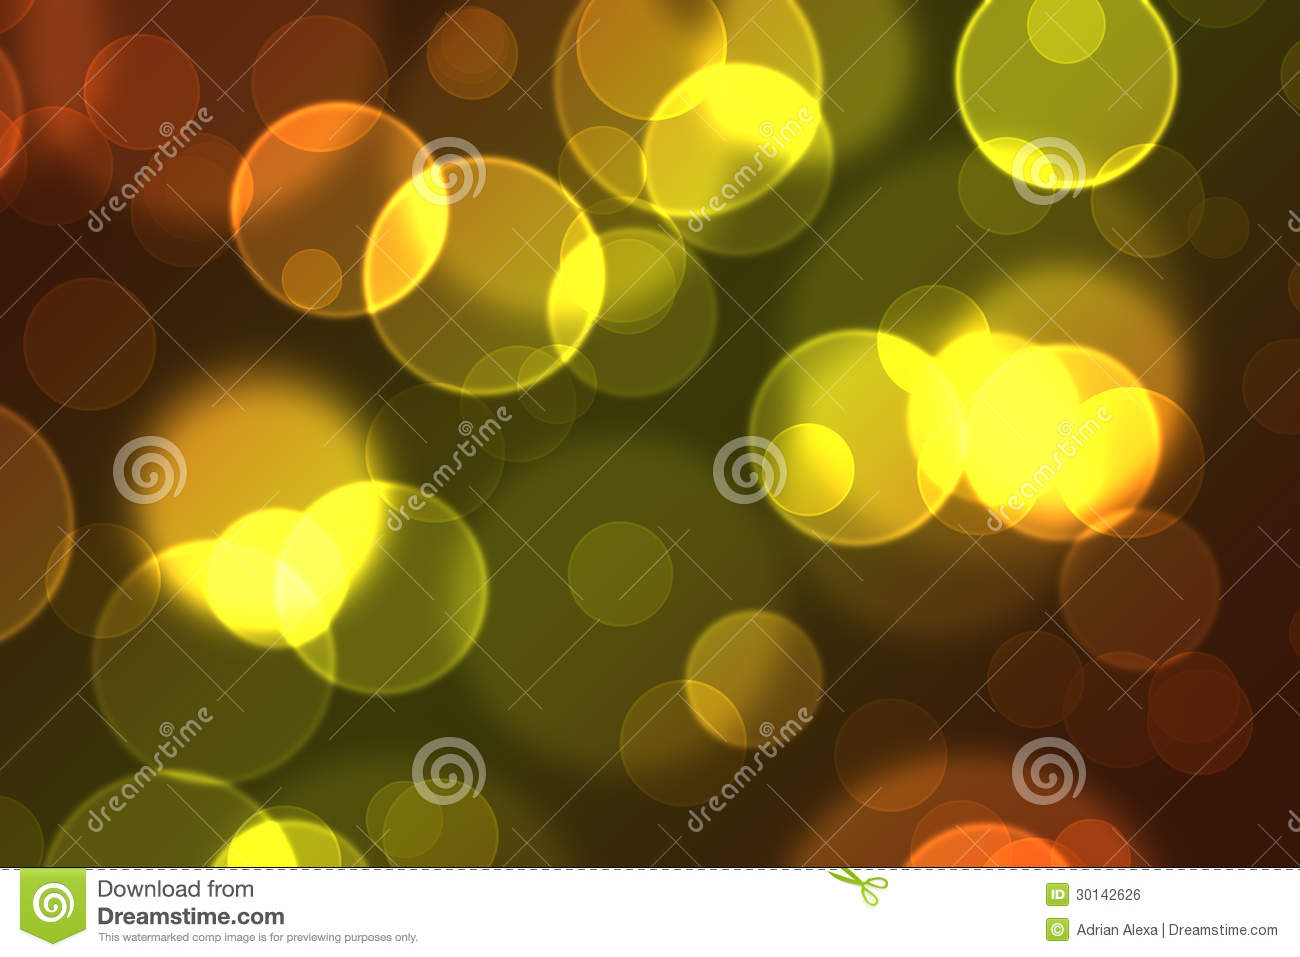 awesome abstract yellow orange - photo #25